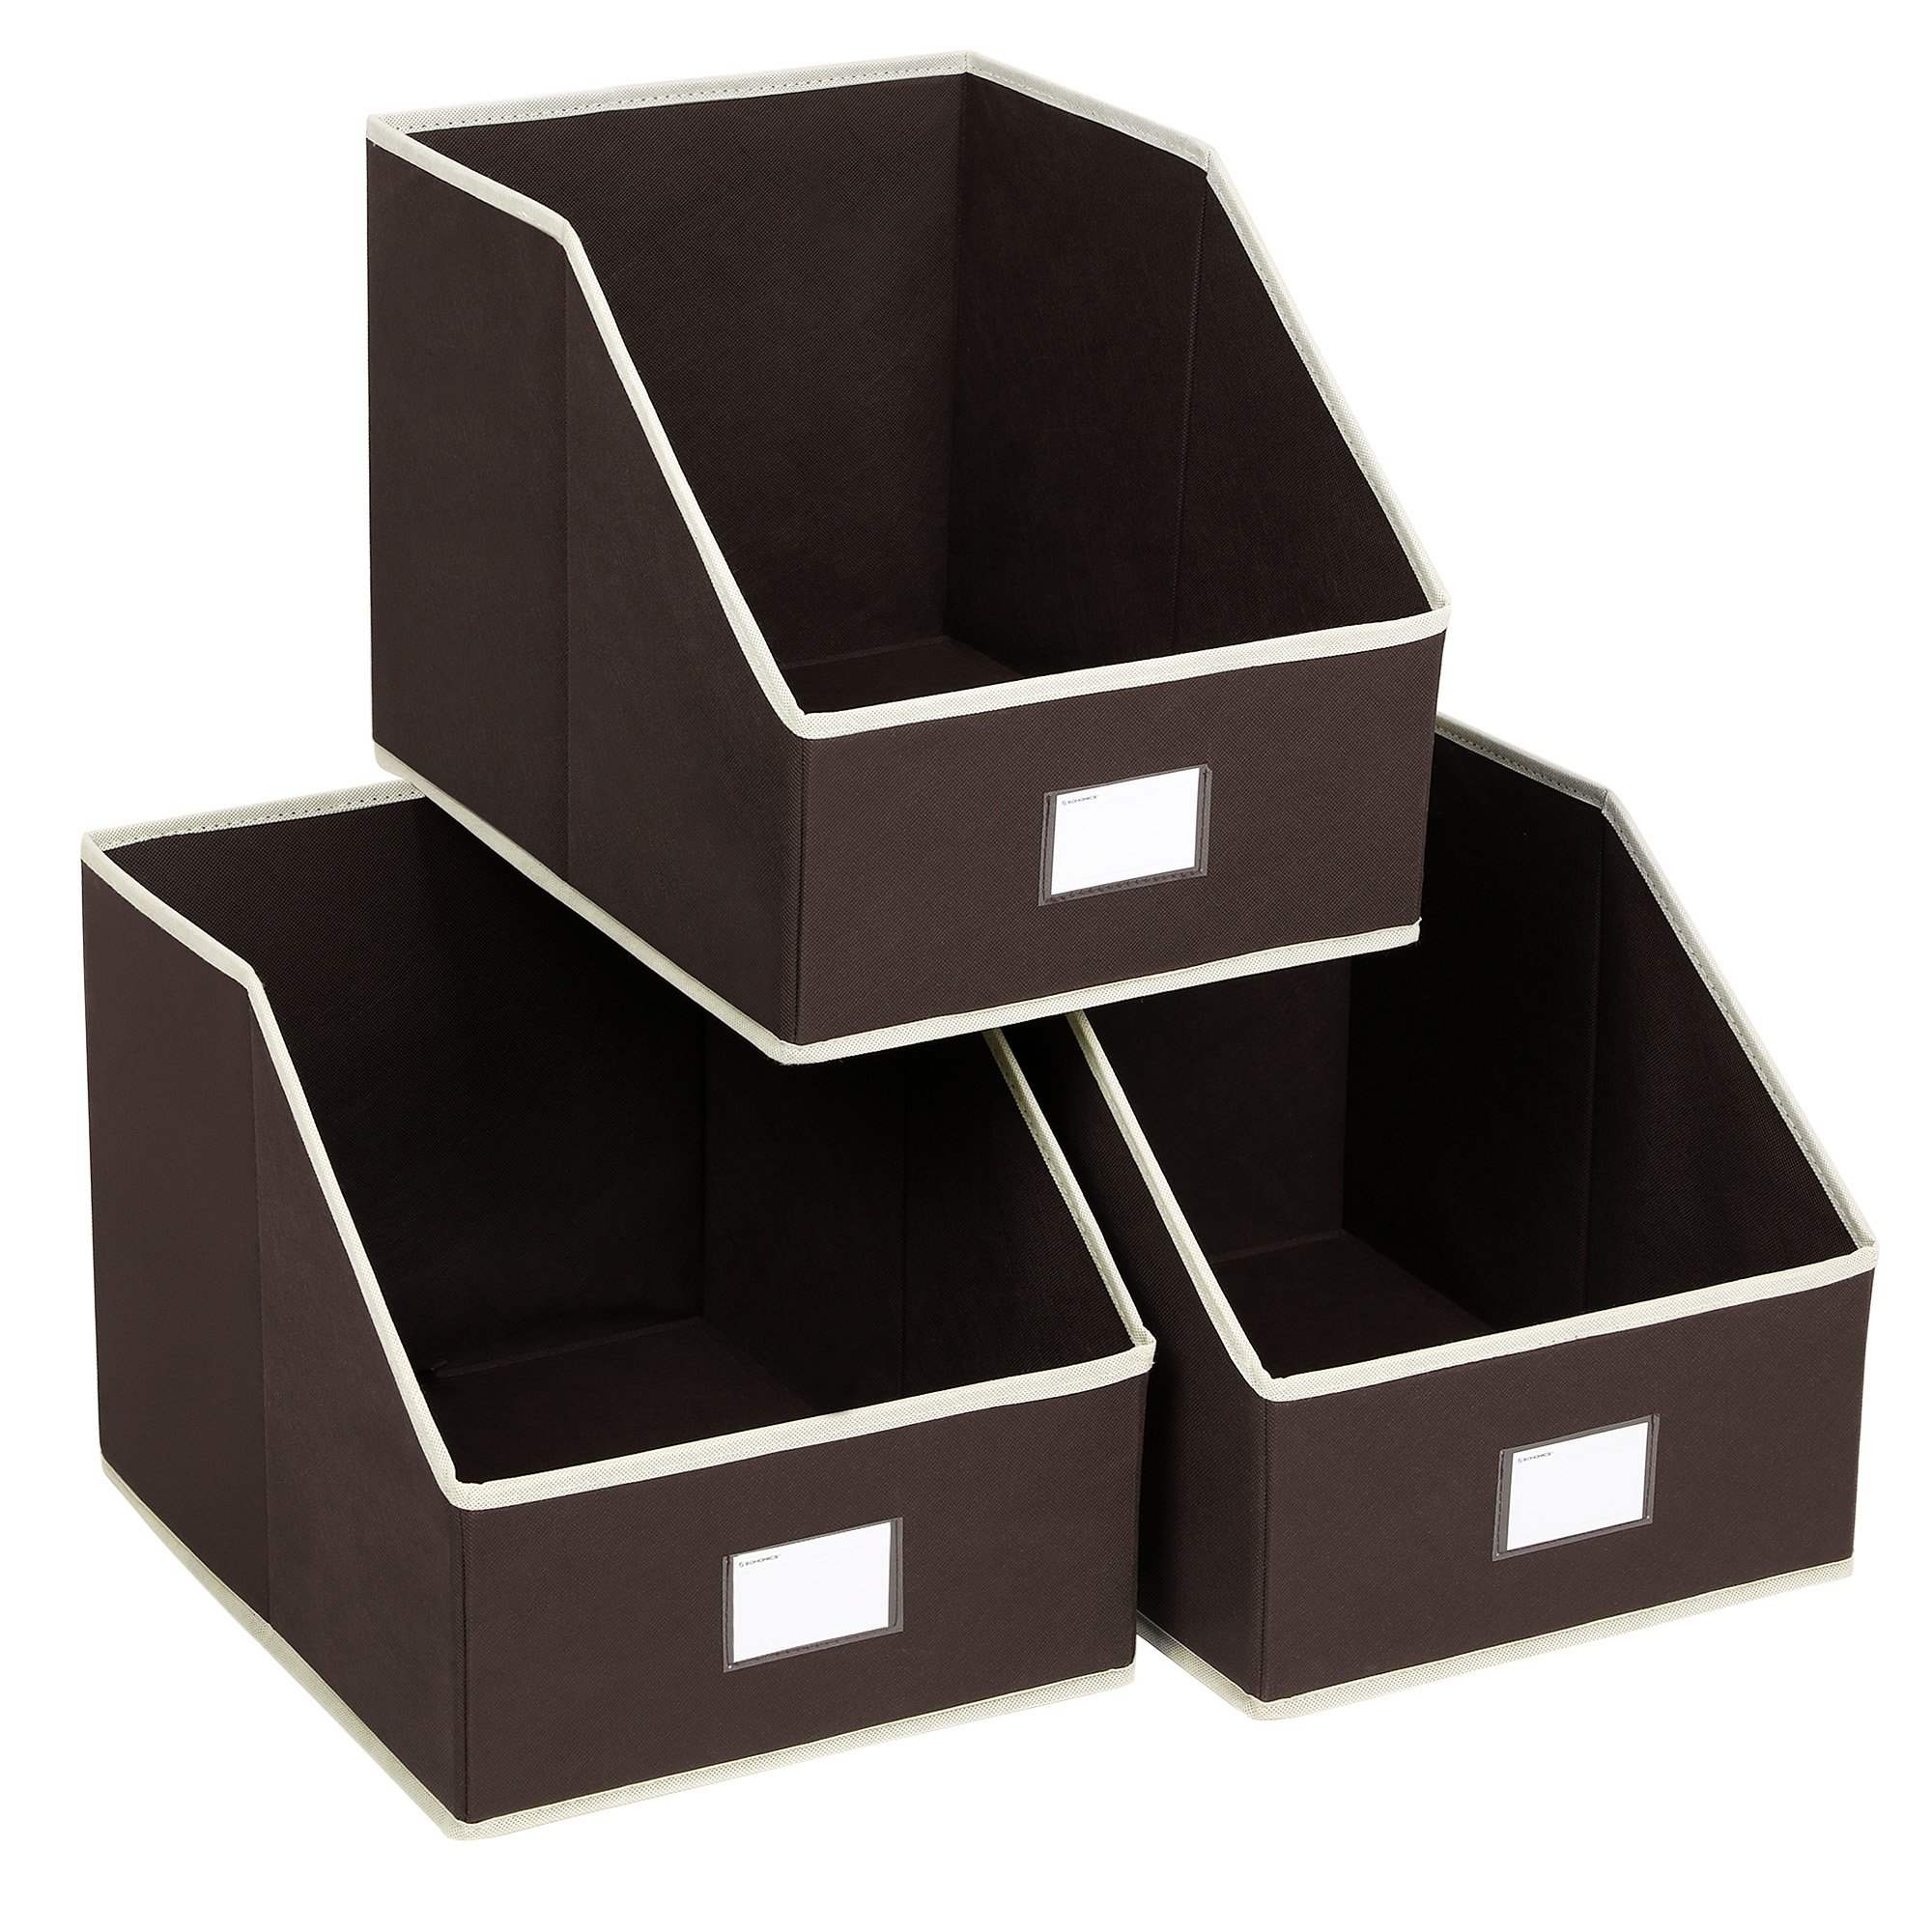 SONGMICS 3 Pack Open Storage Bins Foldable Trapezoid Storage Cubes Non-woven Cloth Organizers with Label Holders for T-shirts sweaters etc, Brown UROB03K by SONGMICS